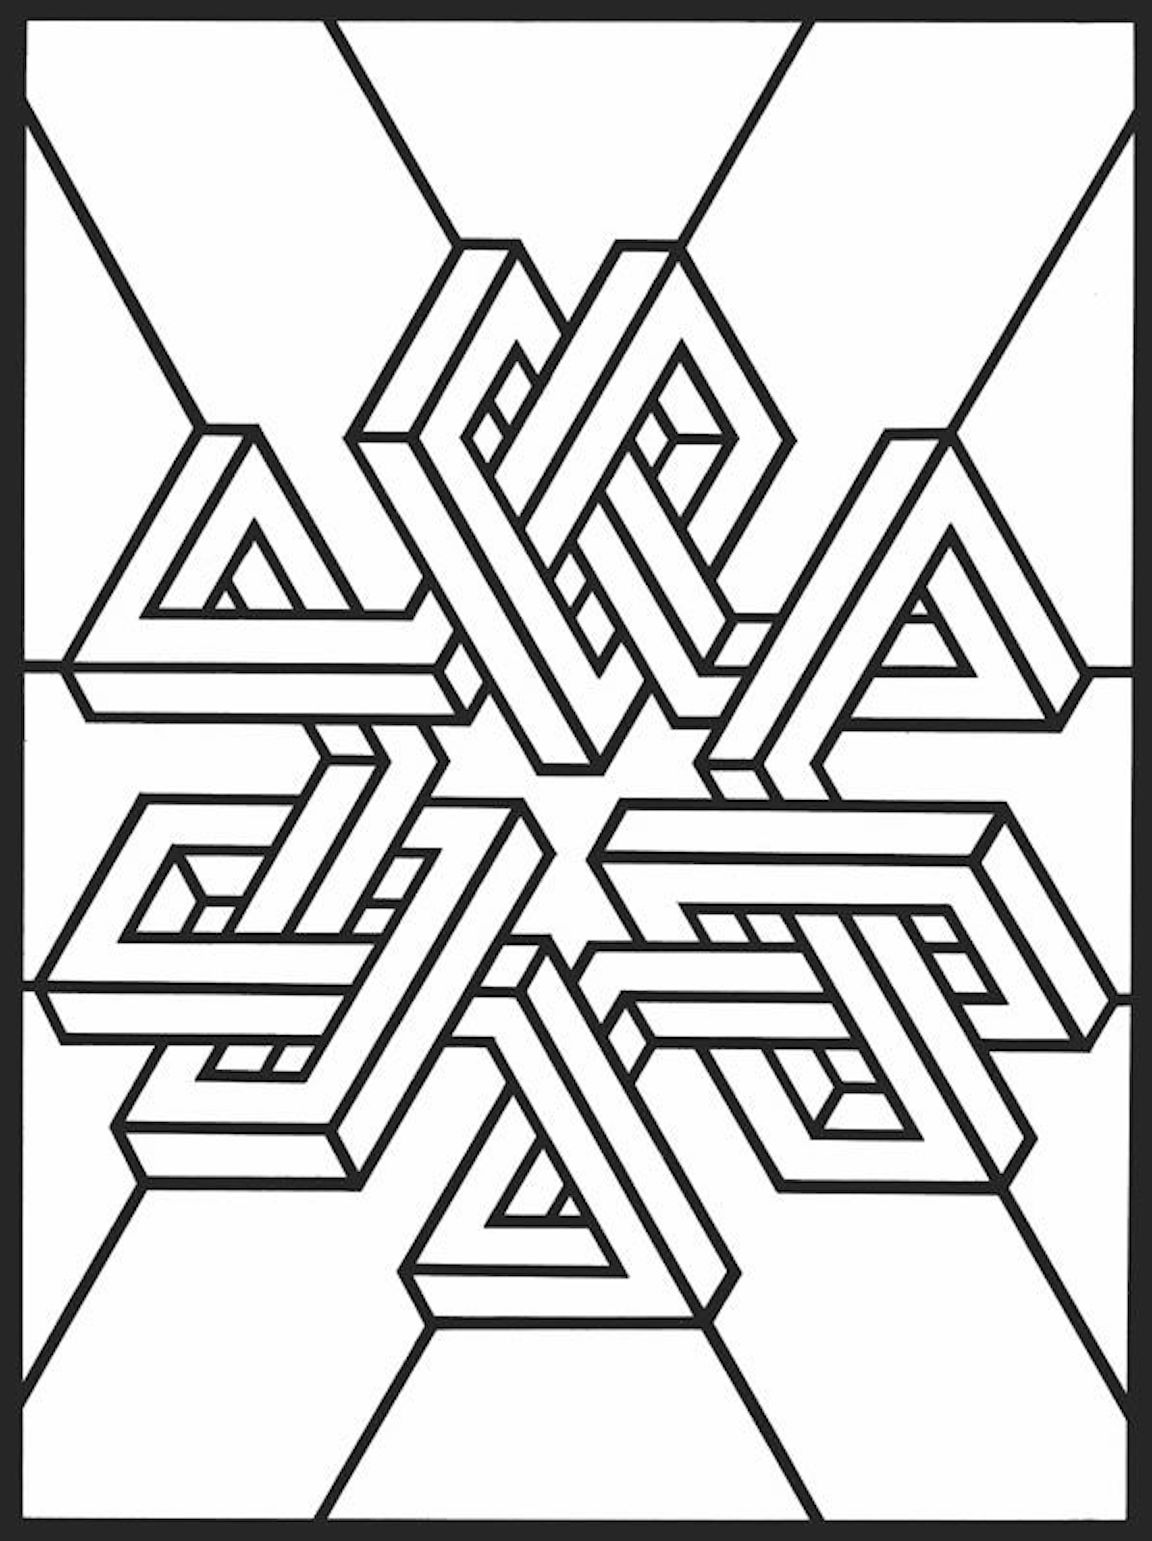 shapes images for coloring shapes coloring pages download and print shapes coloring shapes images coloring for